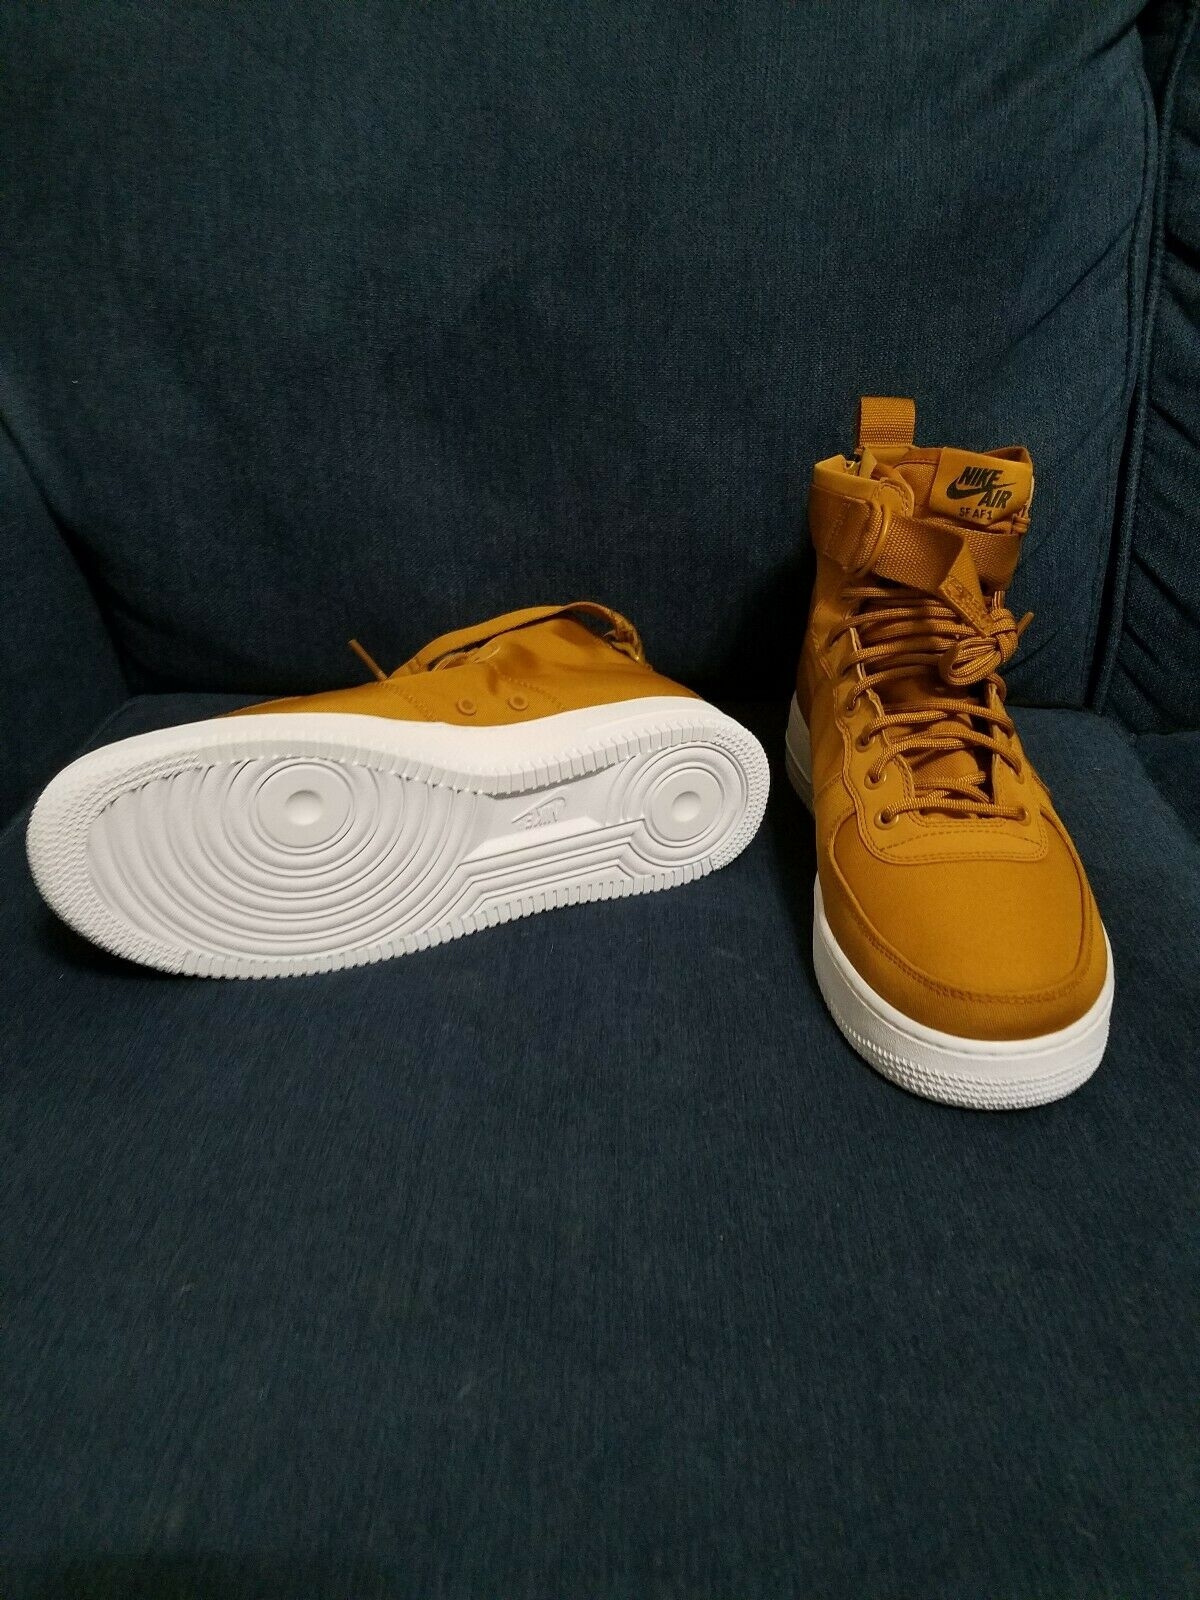 NEW Nike SF AF1 Mid Air Force Desert Ochre White Canvas Leather 917753-700 SZ 13